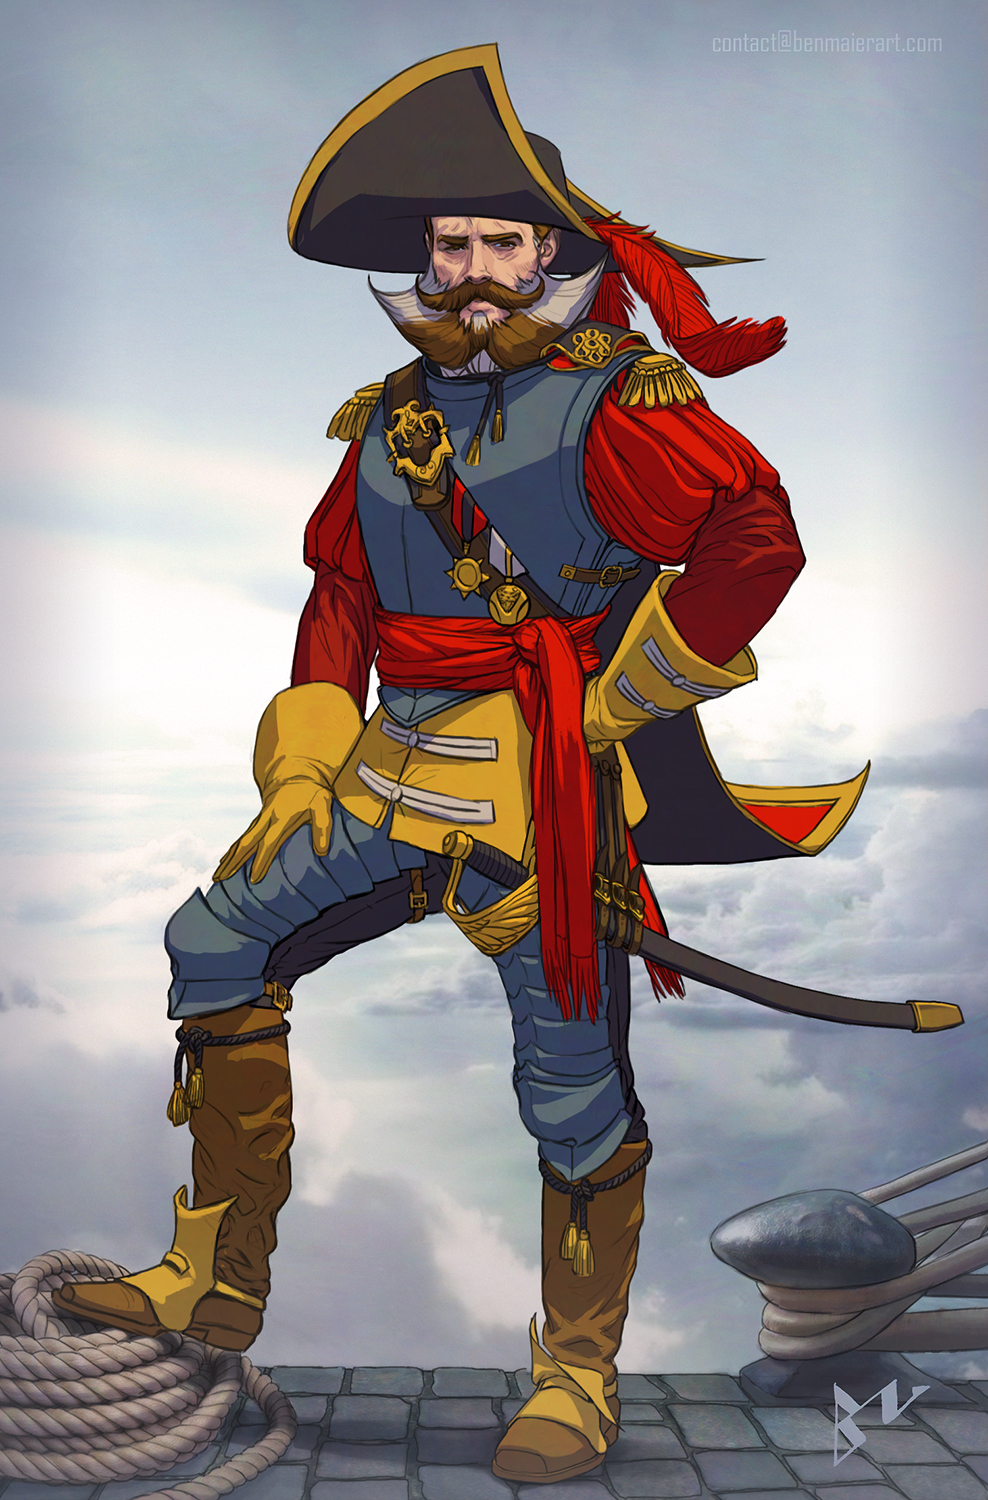 Skycaptain Saunders , Copyright by Ben Maier